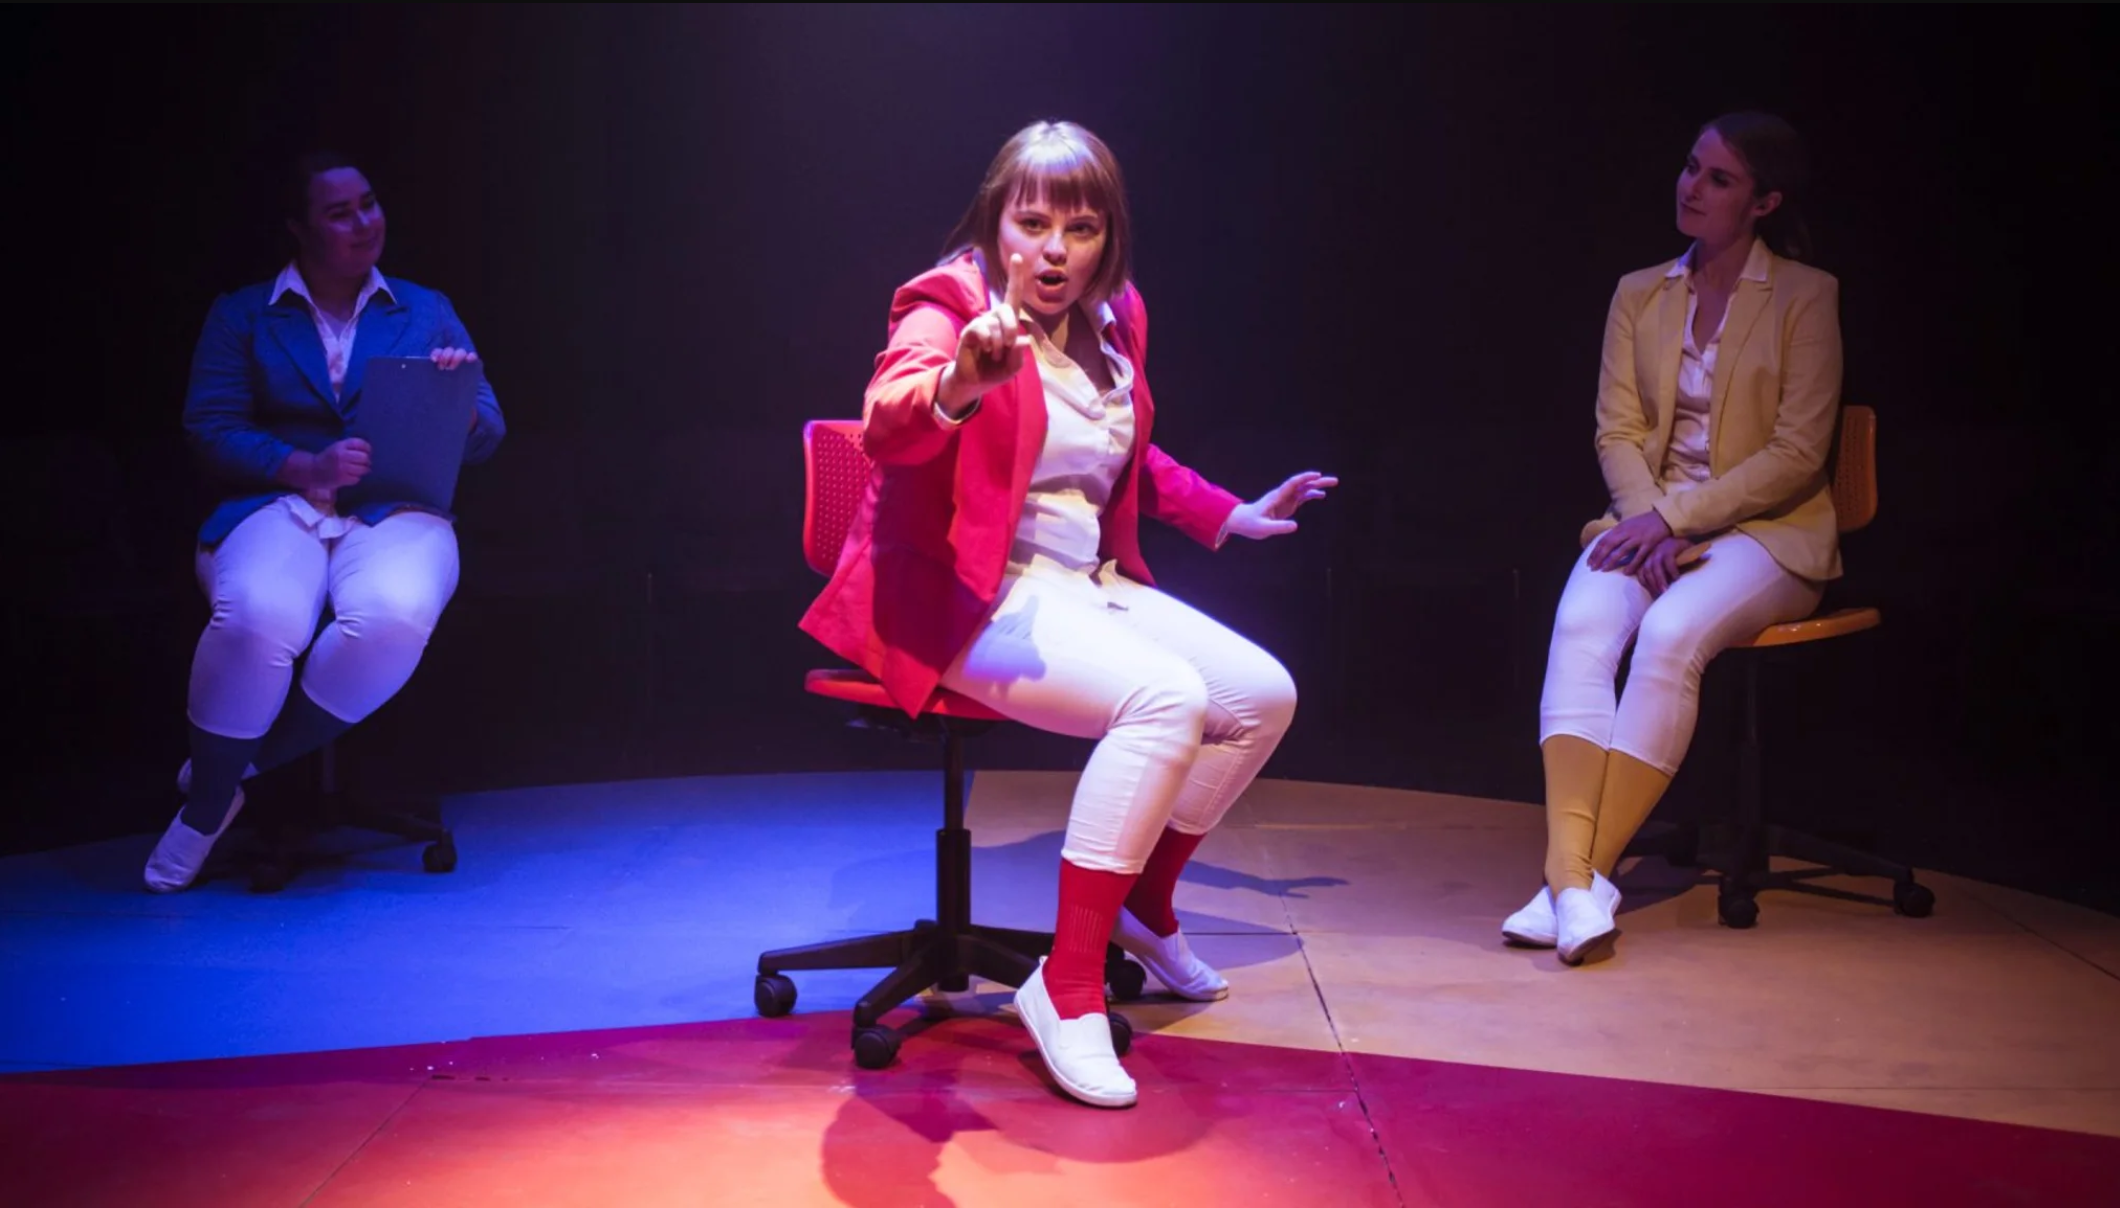 Pictured: Keagan Vaskess, Nicola Bowman and Emma Hoy in  Alexithymia ; set design by Stuart Brown; lighting design by Peter Amesbury; photography by Pippa Samaya.